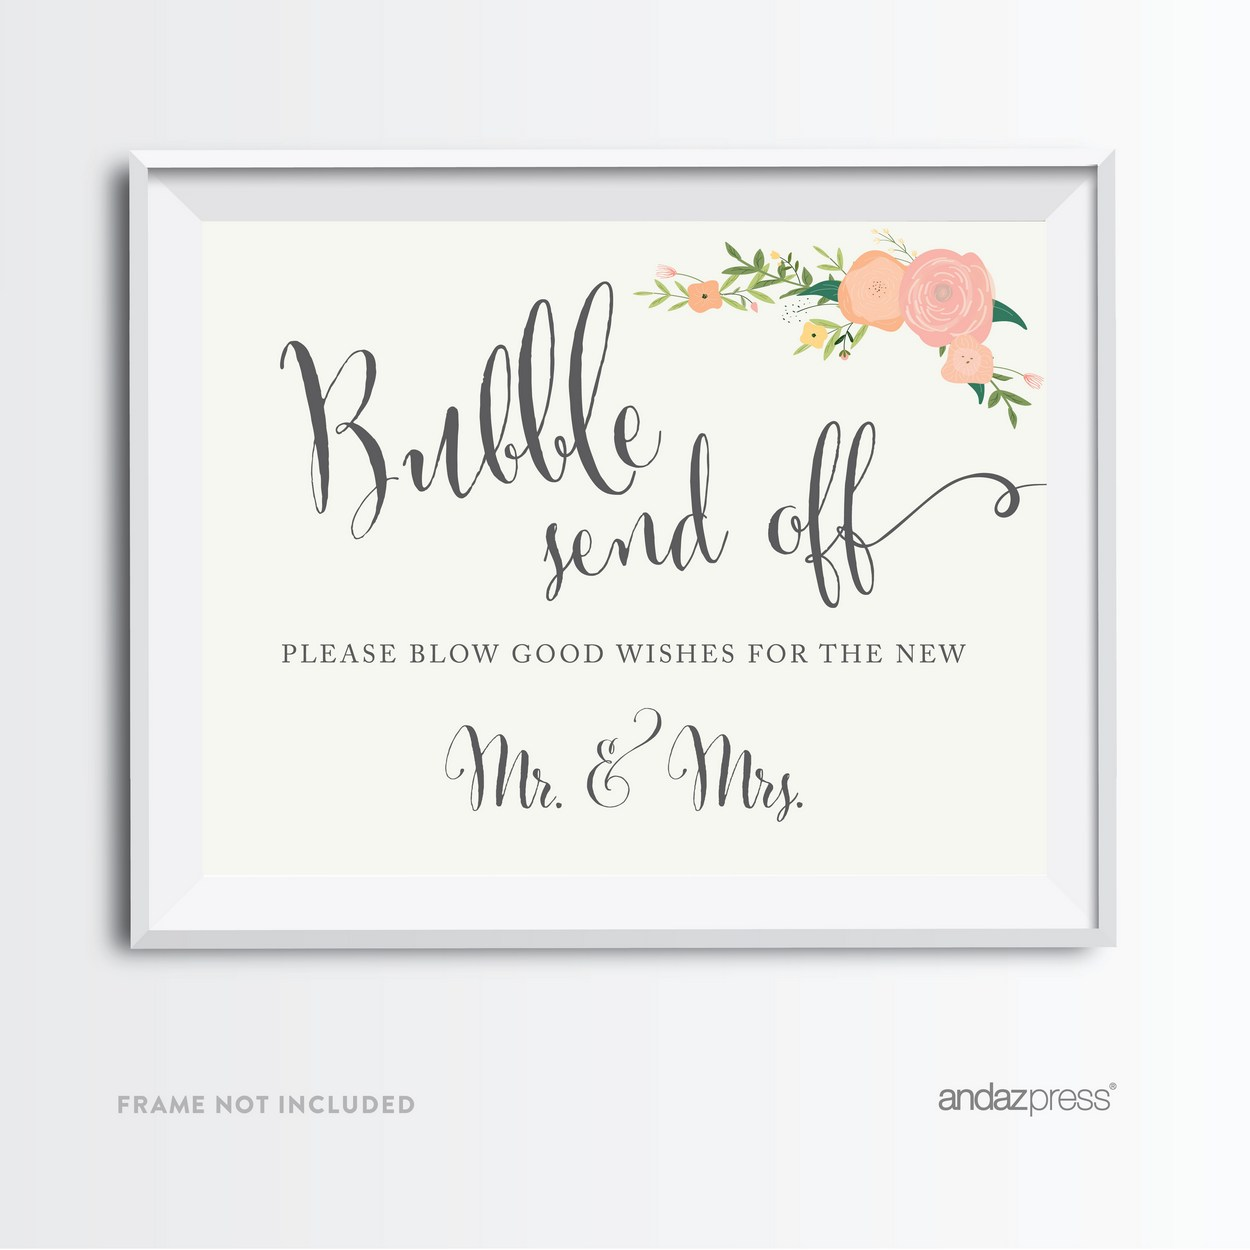 Bubbles Send Off - Blow Good Wishes Floral Roses Wedding Party Signs